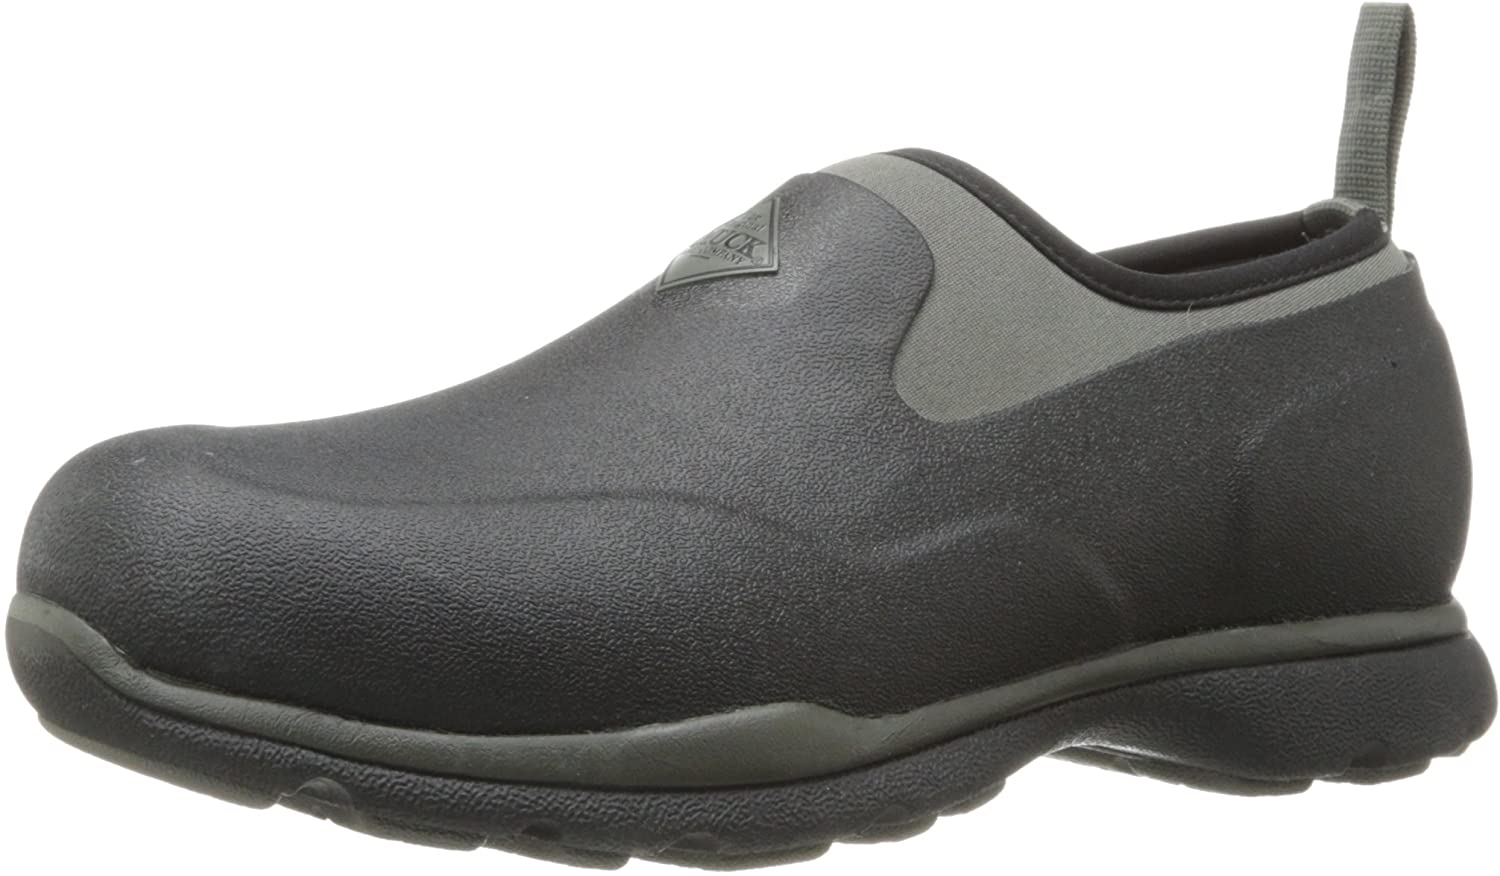 Muck Boot Men's Excursion Pro Low Shoe